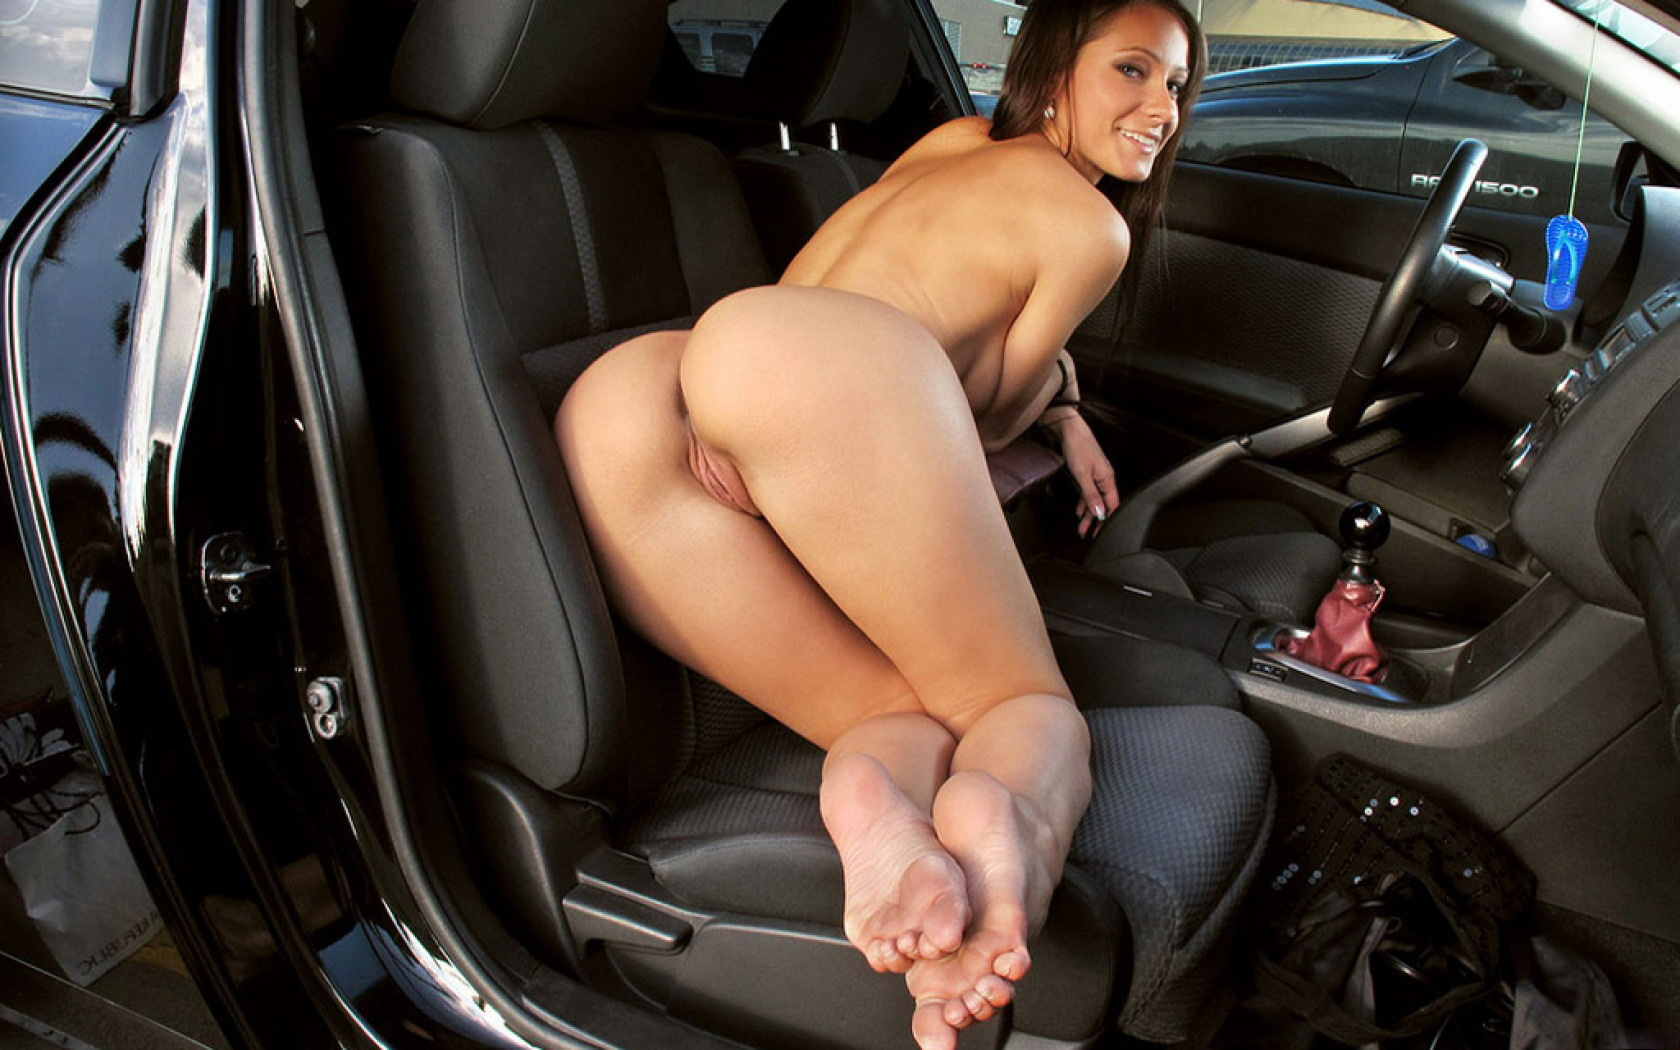 Happens. Let's Nude girl in backseat of car opinion already